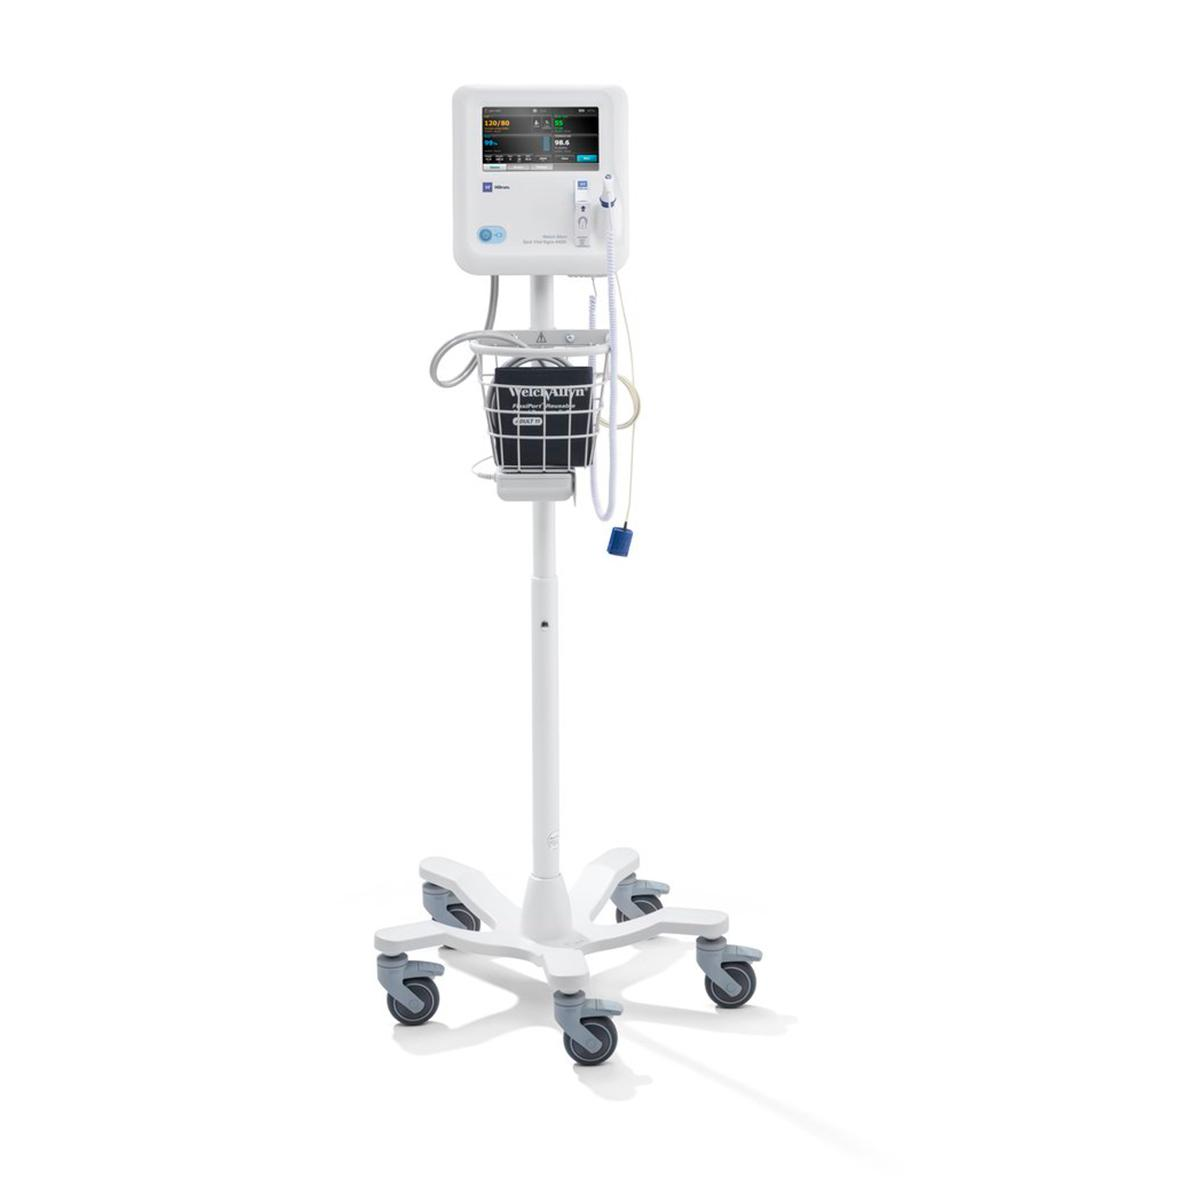 A Spot Vital Signs® 4400 Device on its white rolling stand, which includes a basket to hold the blood pressure cuff attachment.